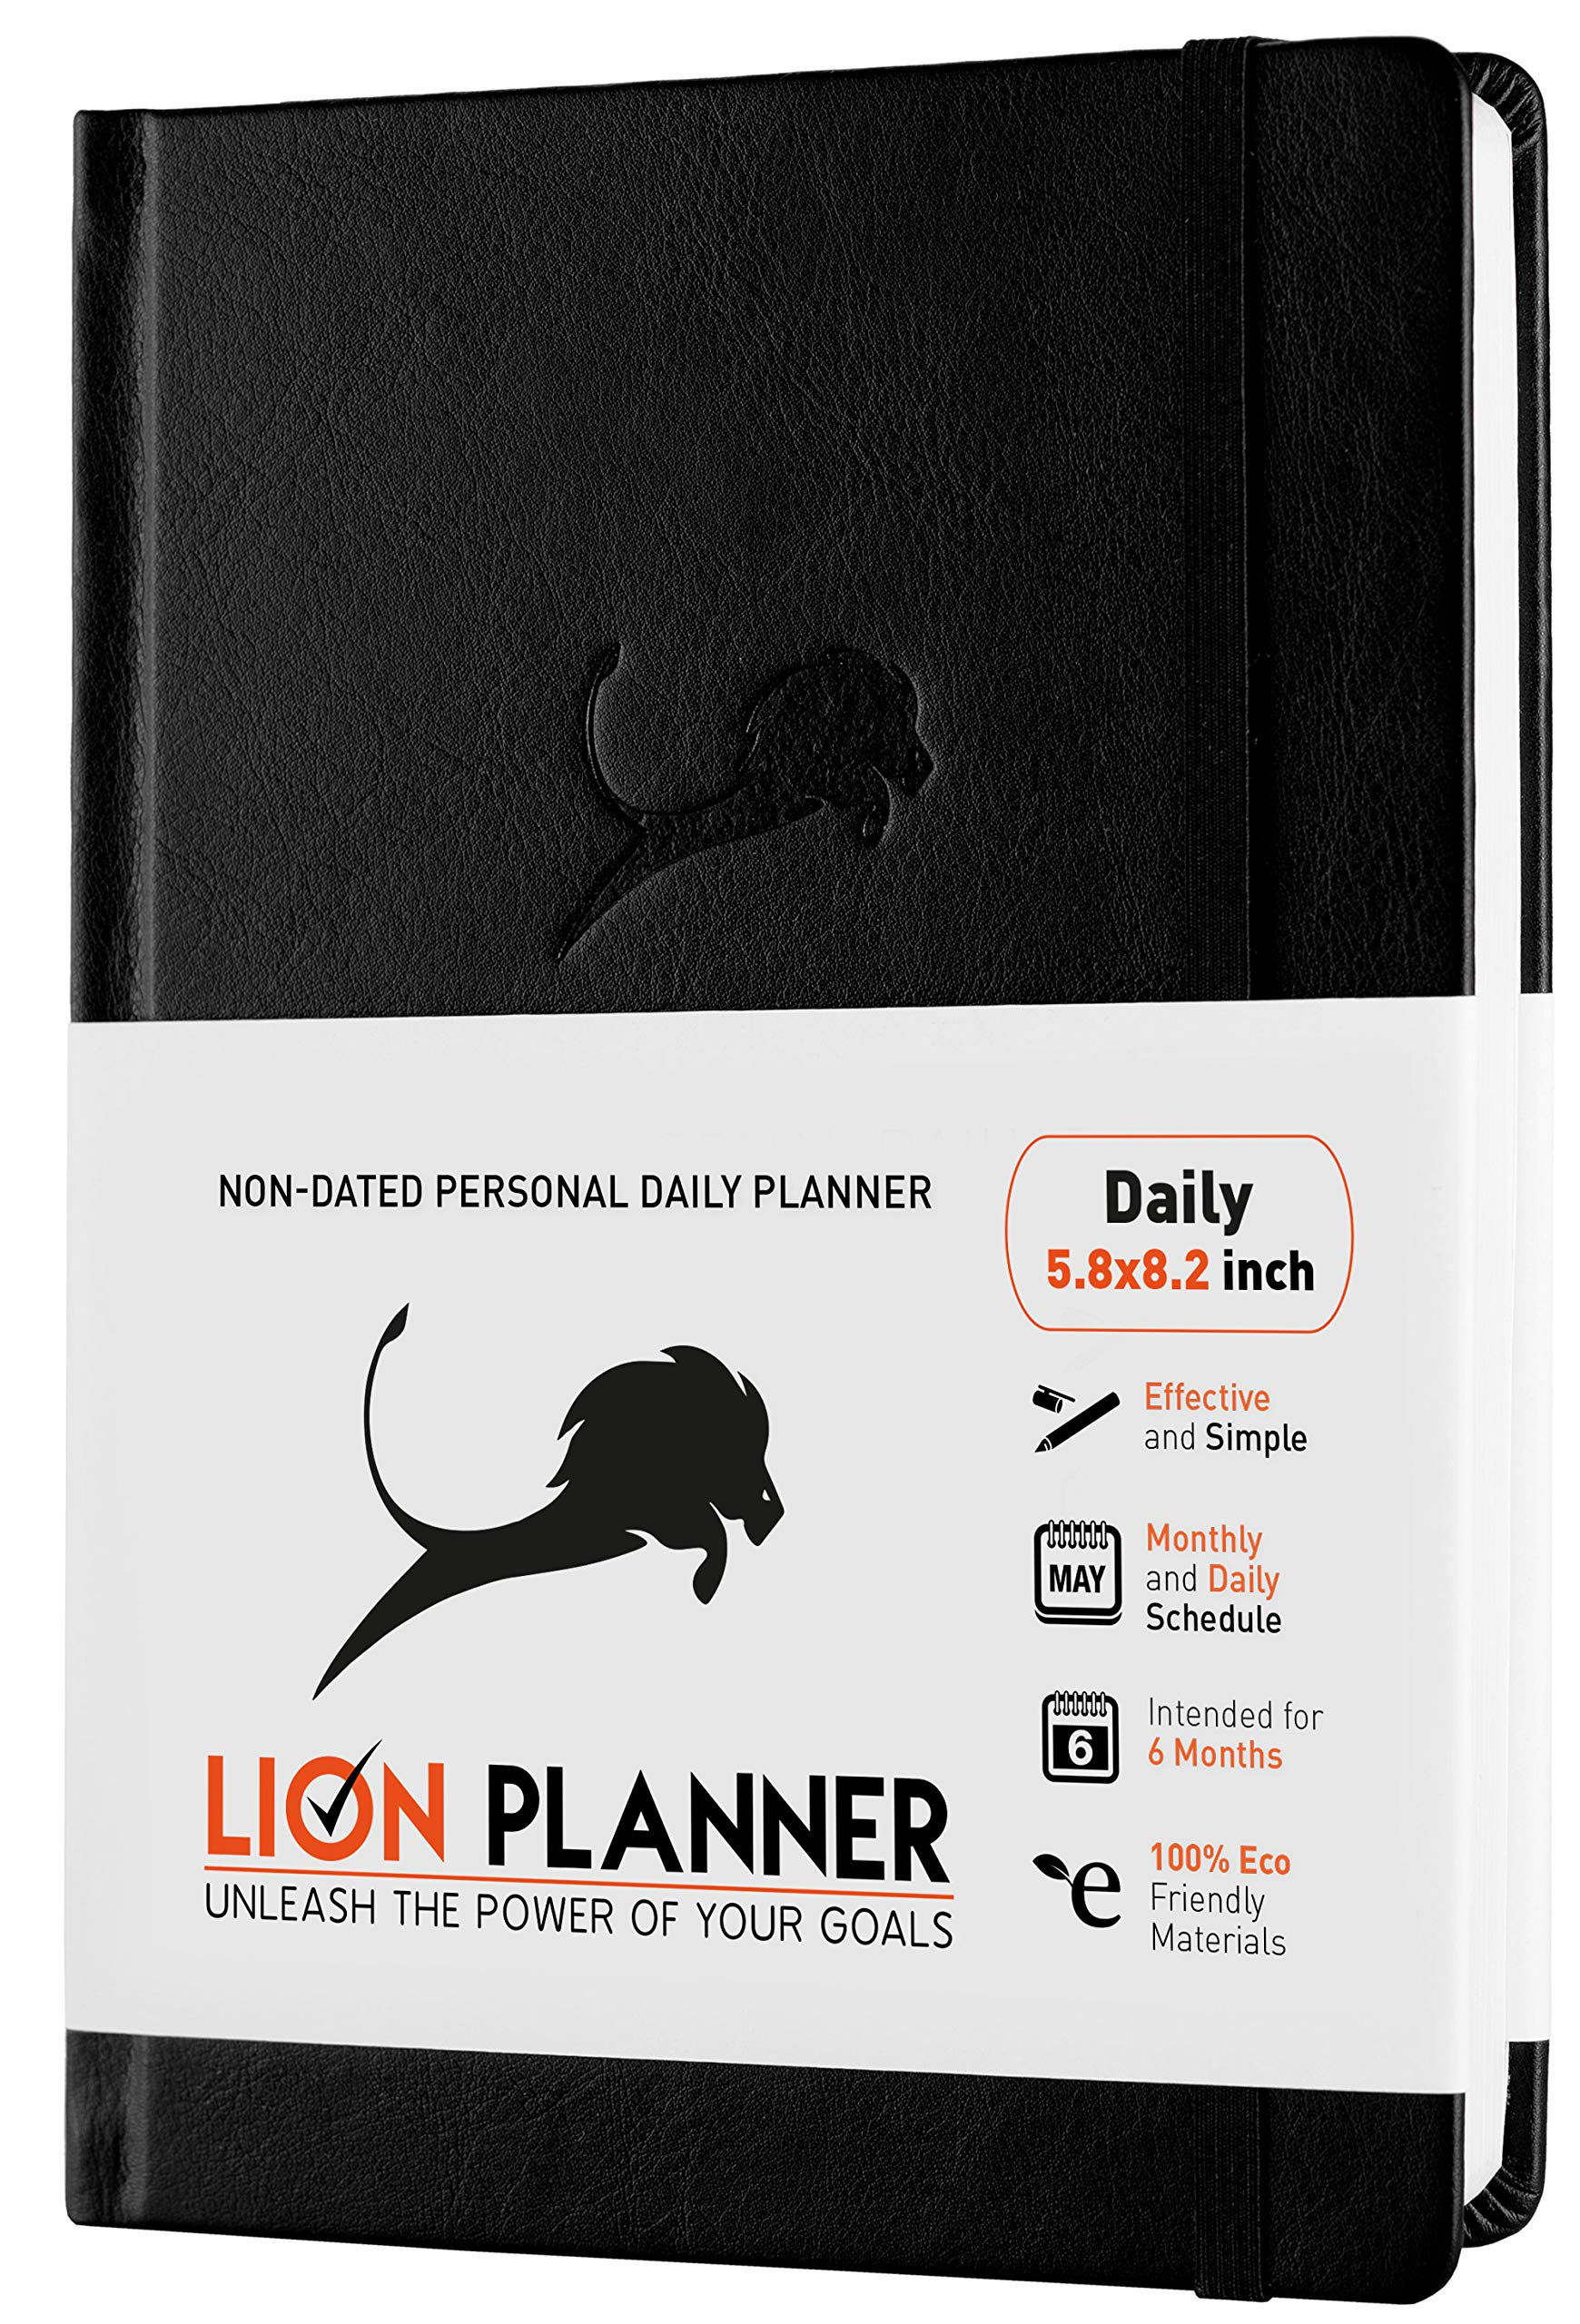 Daily Planner, Calendar and Gratitude Journal to Increase Productivity & Happiness, High Performance Organizer Planner | Vegan Leather Hardcover, Undated 6-Months, 24-Hour Schedule Planner (Black) by Power Place